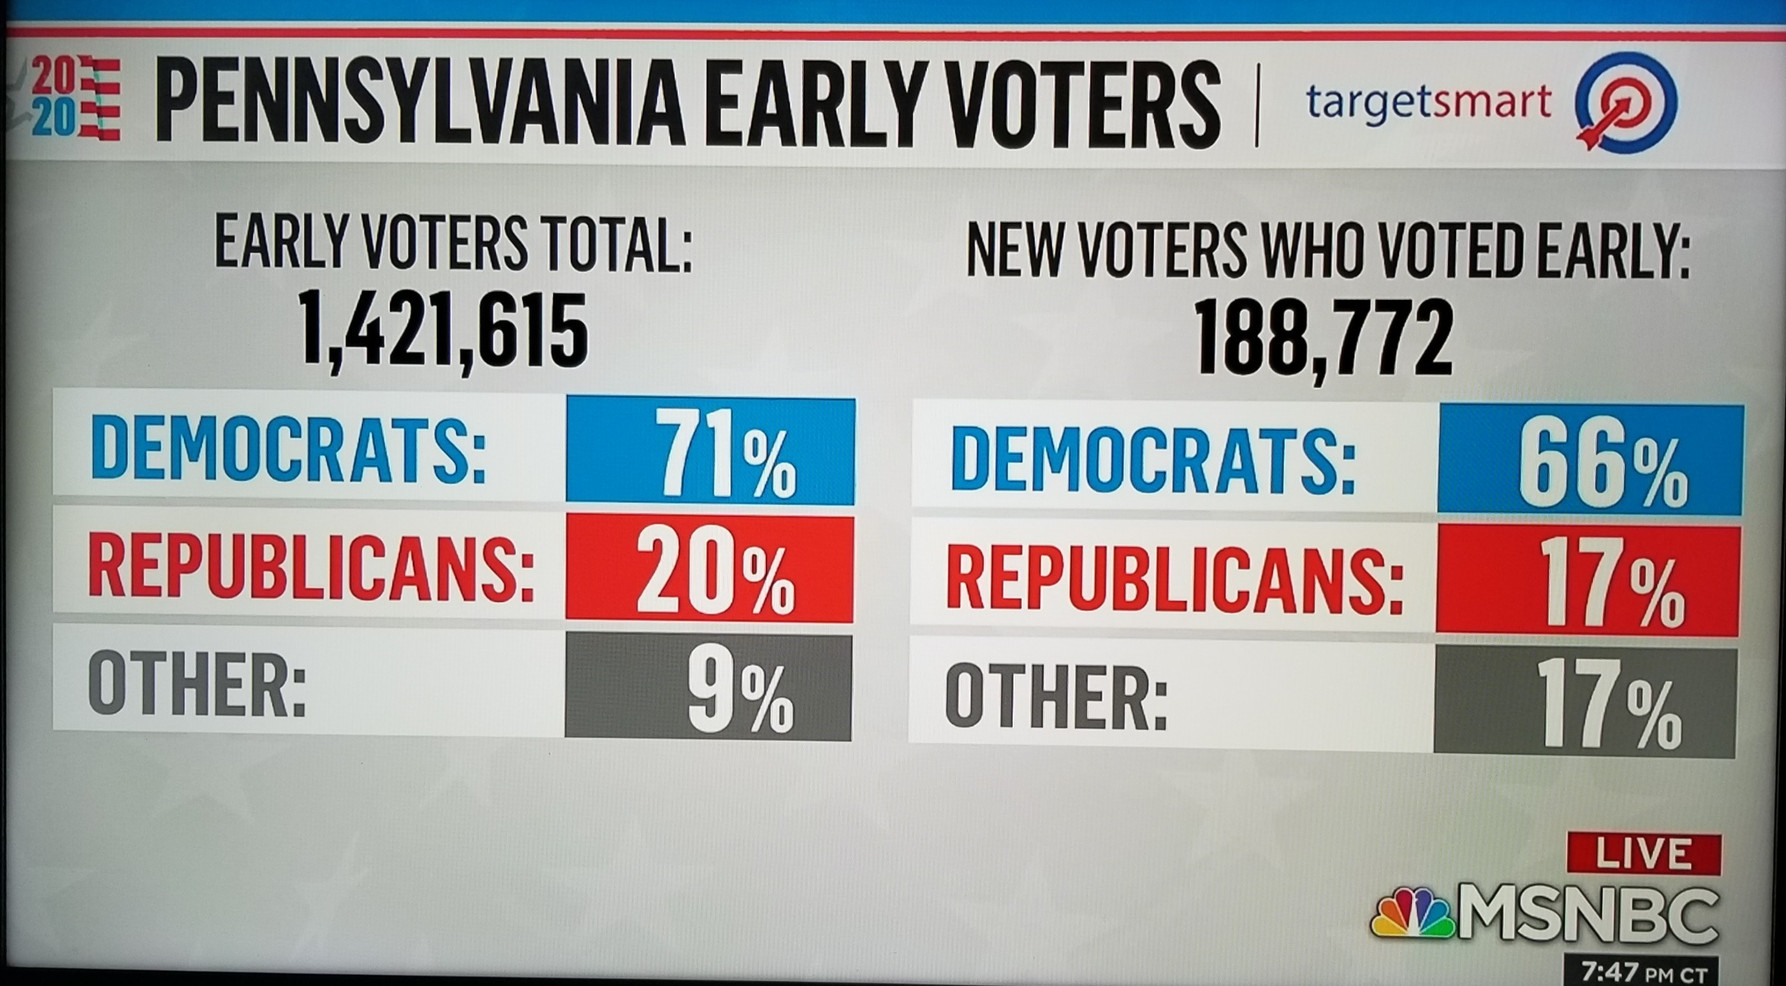 Pennsylvania Voting early dramatically for Democrats